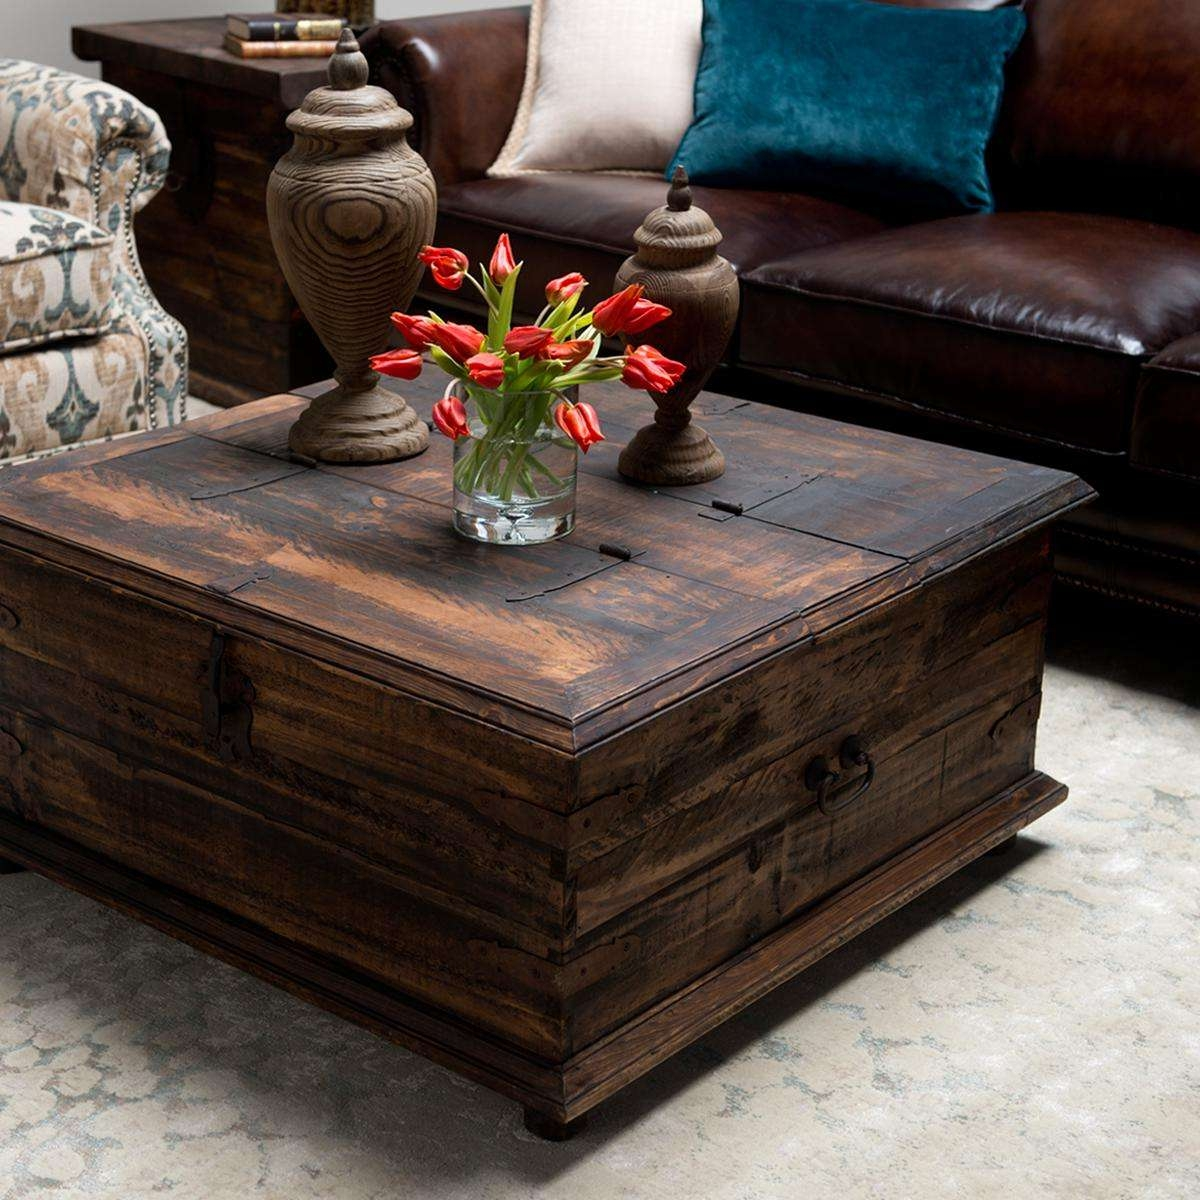 Weir's Furniture Regarding Current Antique Rustic Coffee Tables (View 16 of 20)